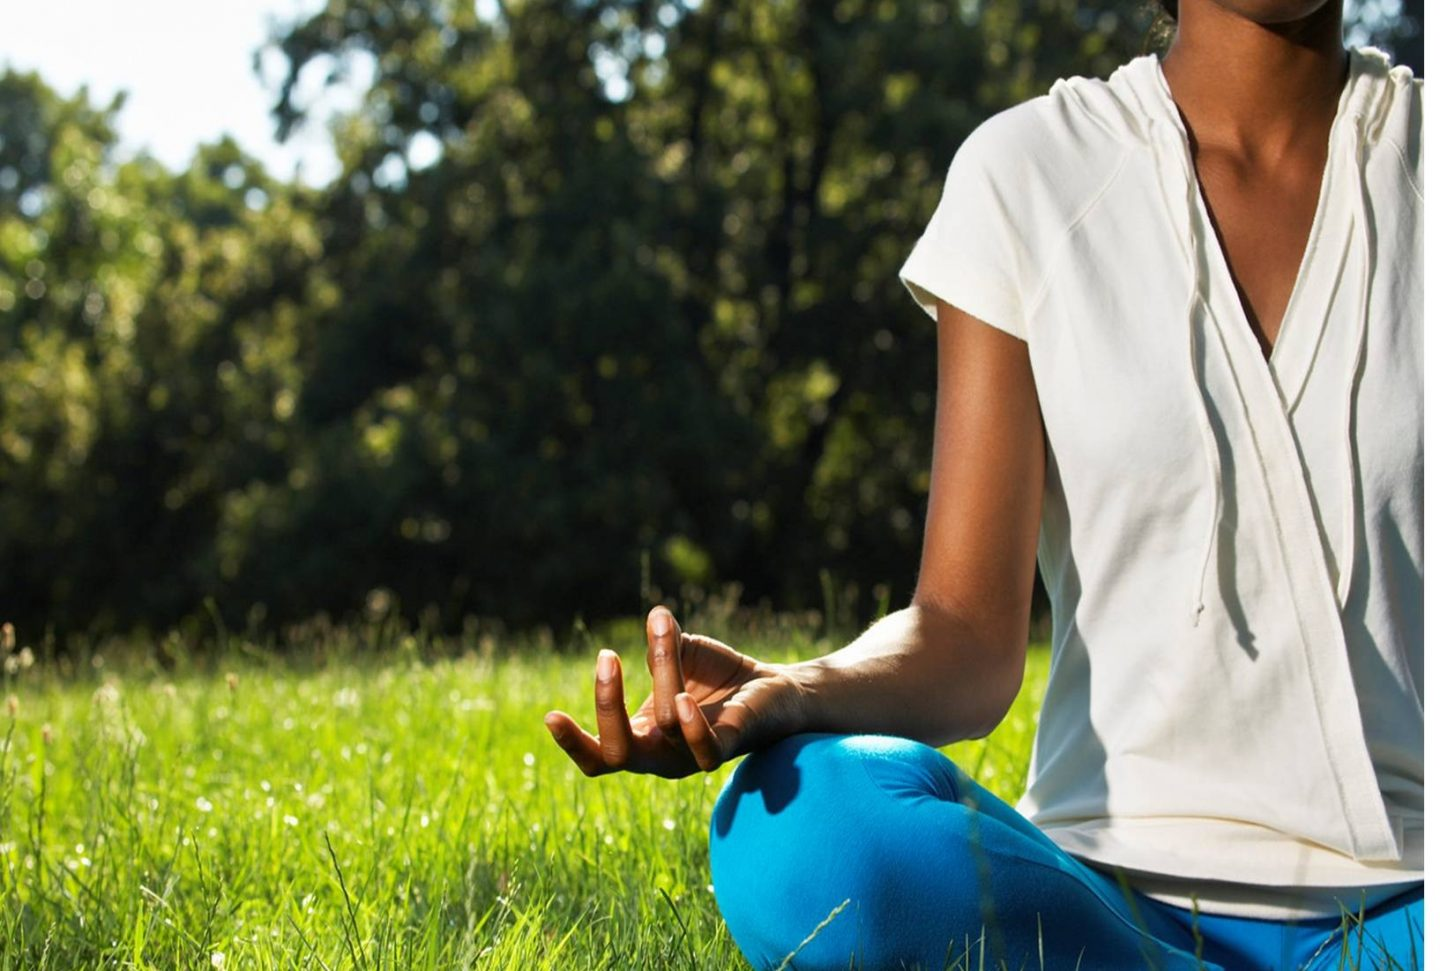 10 Ways to Engage in Self-Care